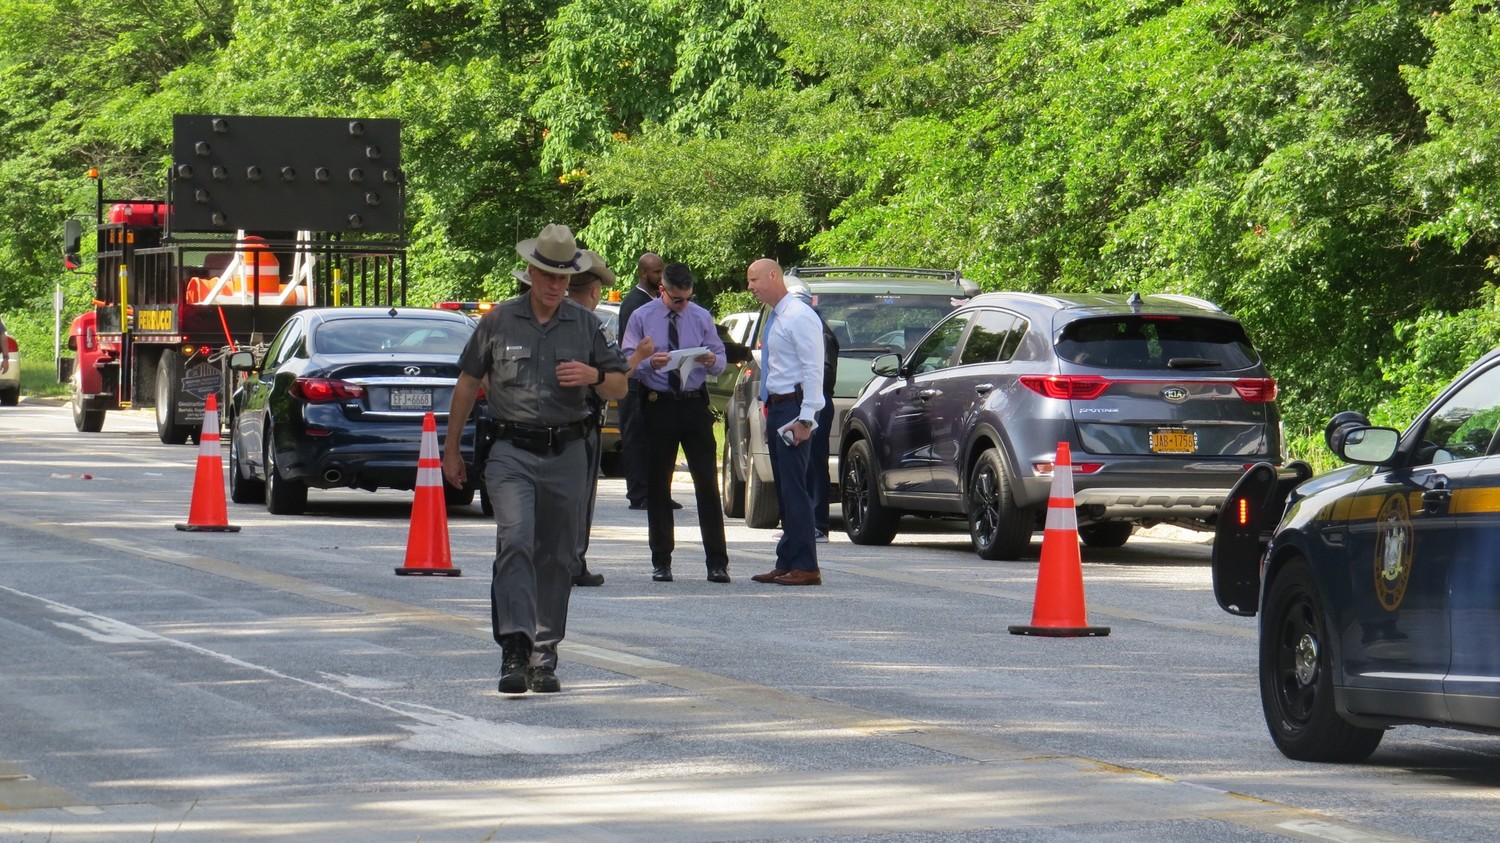 The New York State Police investigated an accident on the Wantagh State Parkway on June 19.